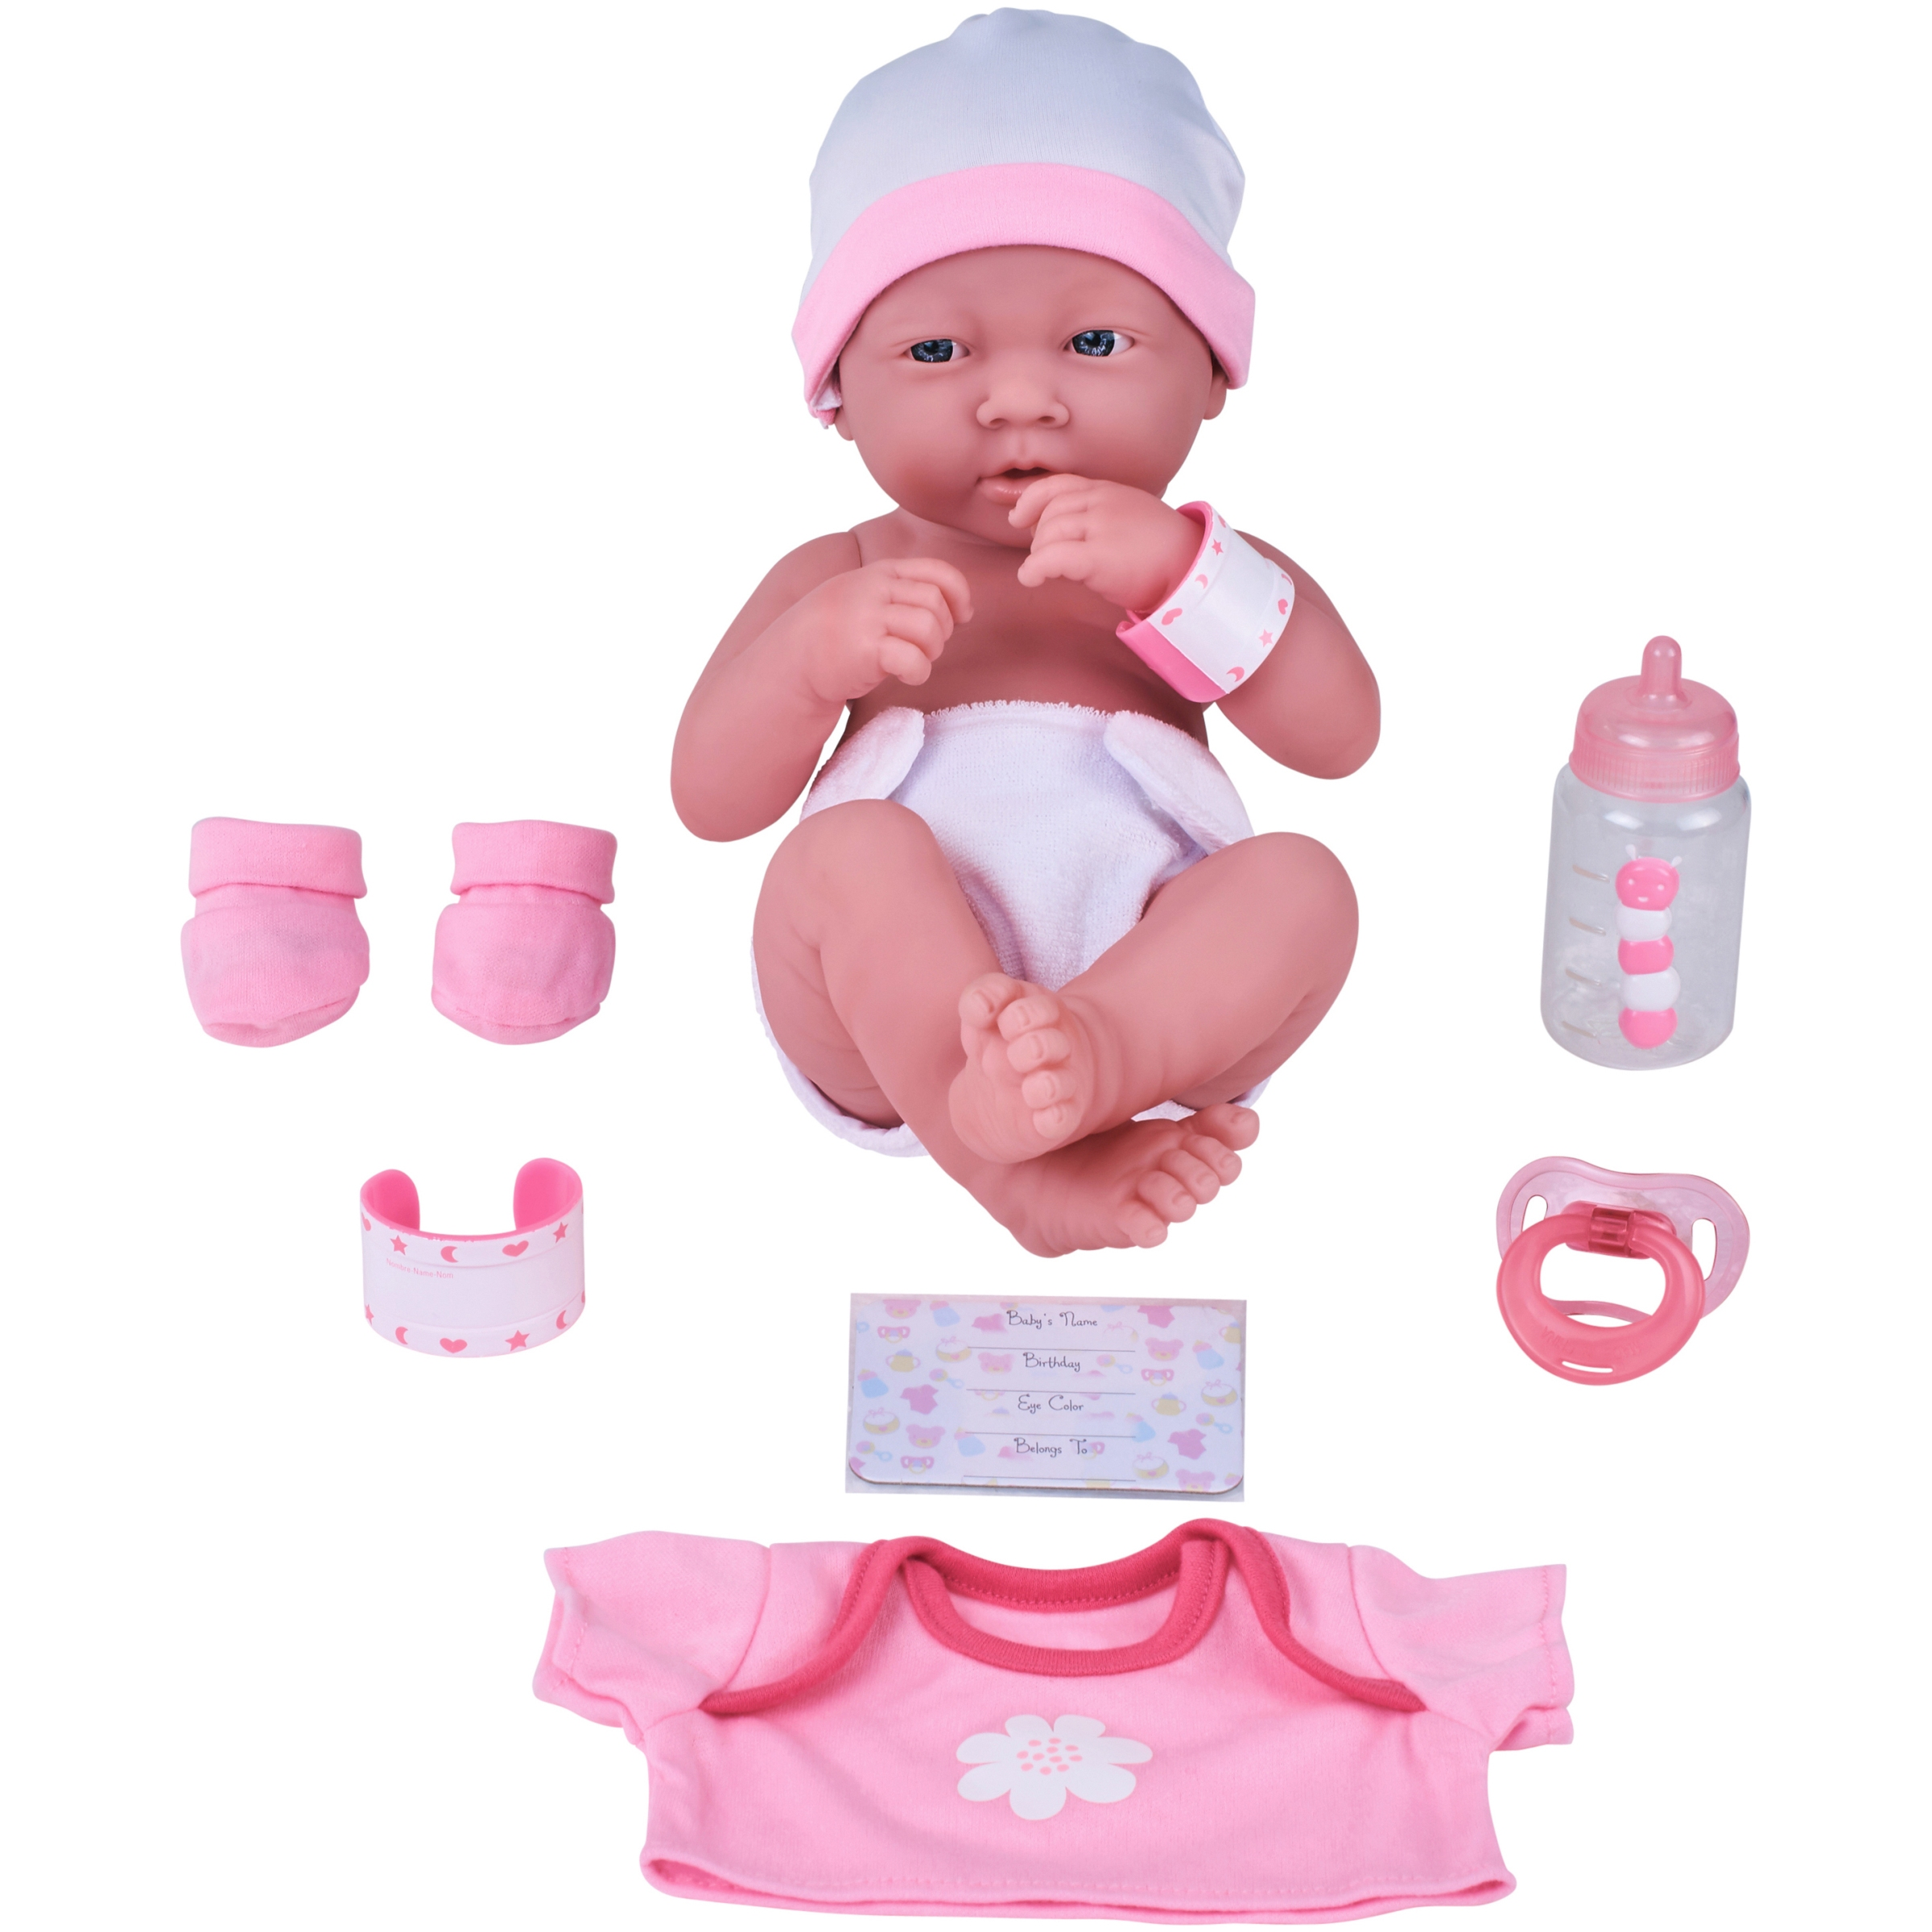 """My Sweet Love 14"""" Newborn Girl Baby Doll with Accessories and ID Bracelet by Wal-Mart Stores, Inc."""